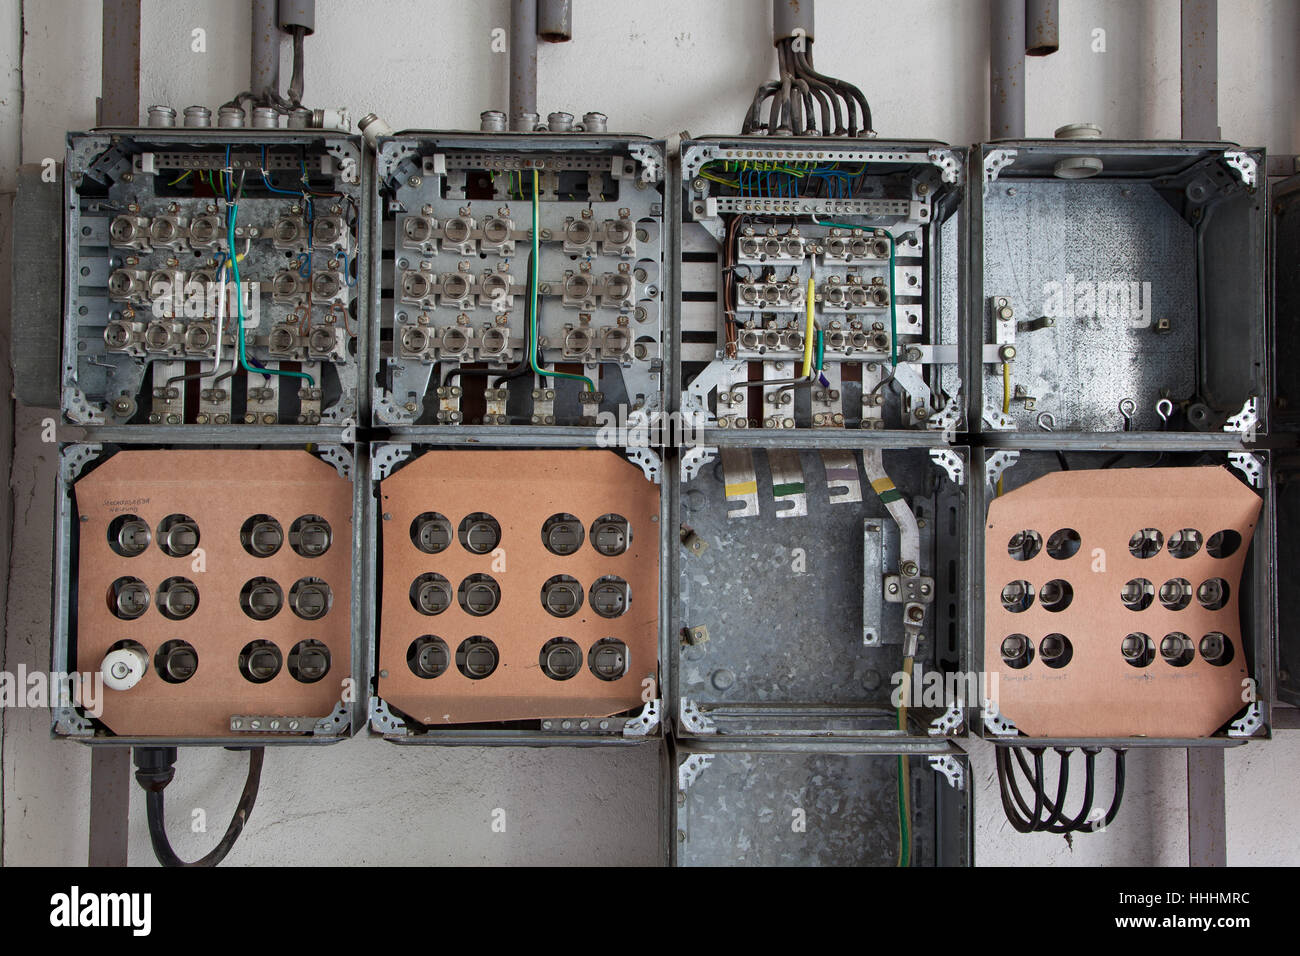 ailing, plant, distribution, dismantled, old, channel, ailing, plant, switch, - Stock Image